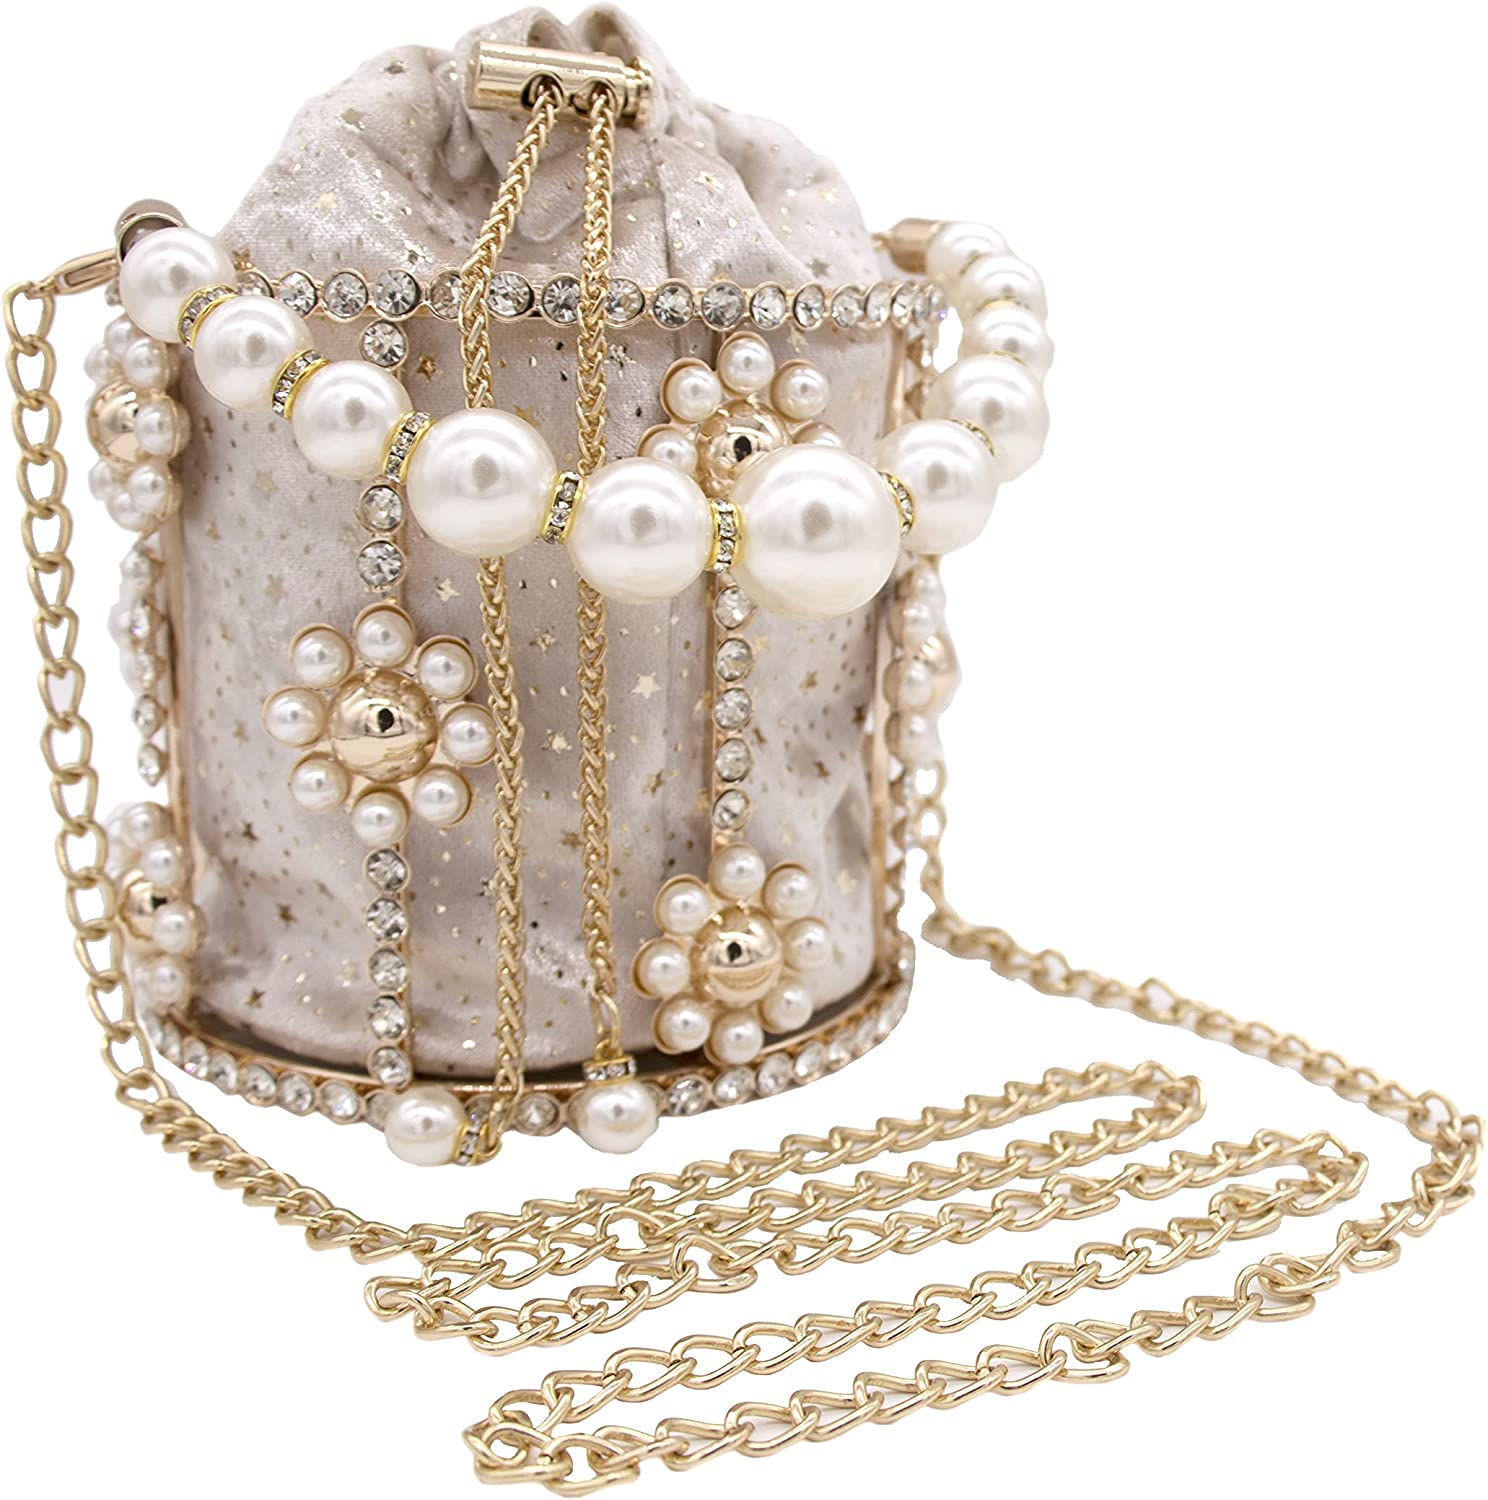 Women Flower Clutch Bag Pearl Evening Purses Top-Handle Crystal Beaded Clutch Handbags for Formal Wedding Prom Party